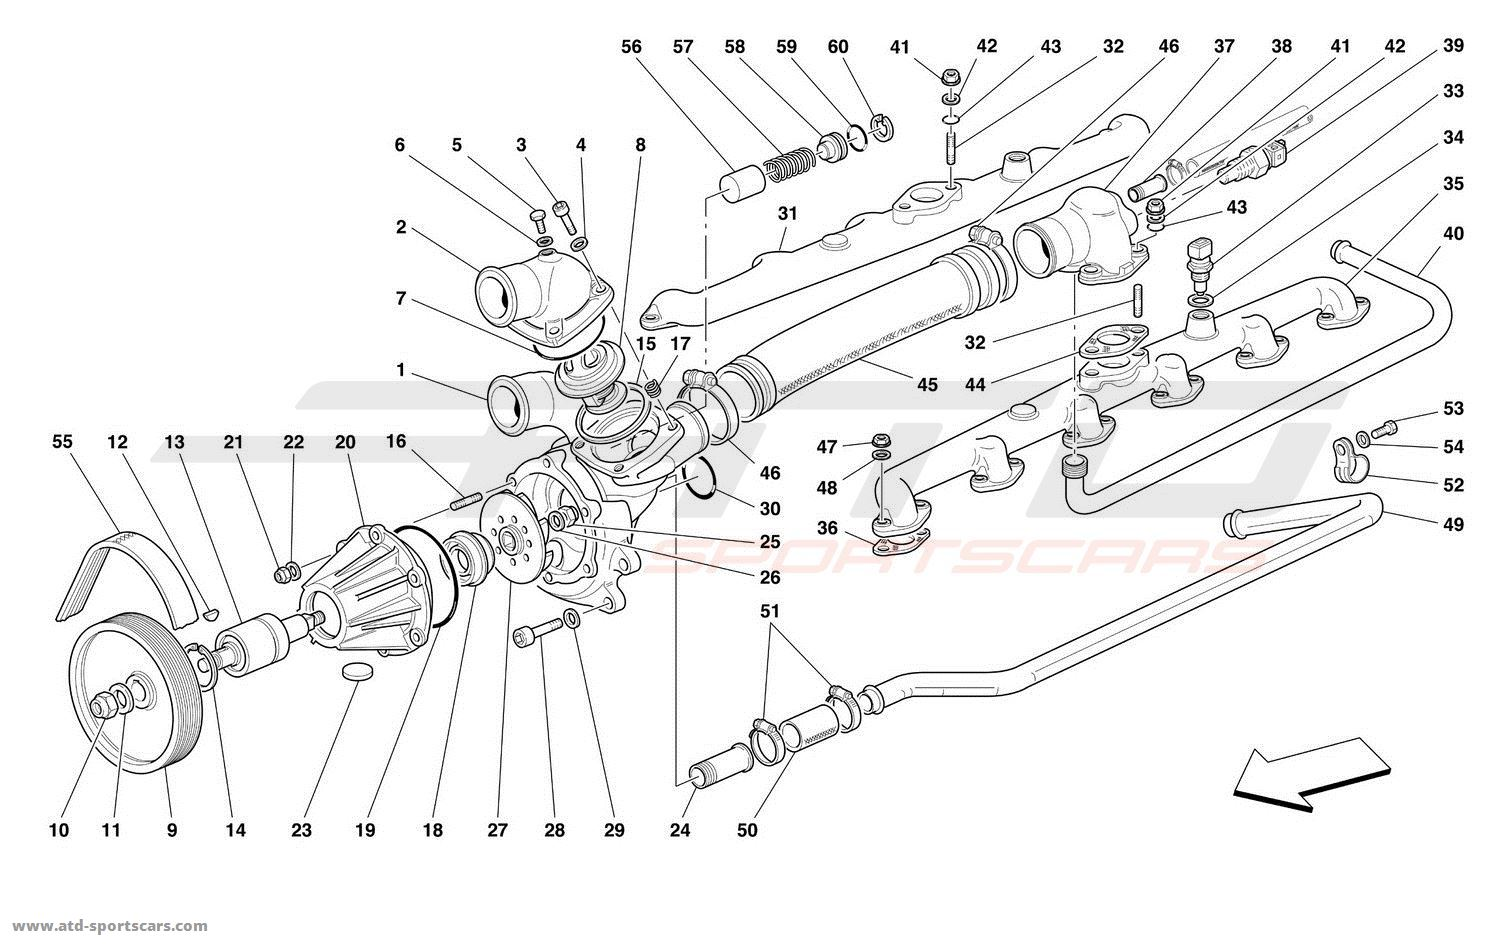 Ferrari 550 Maranello WATER PUMP parts at ATD-Sportscars